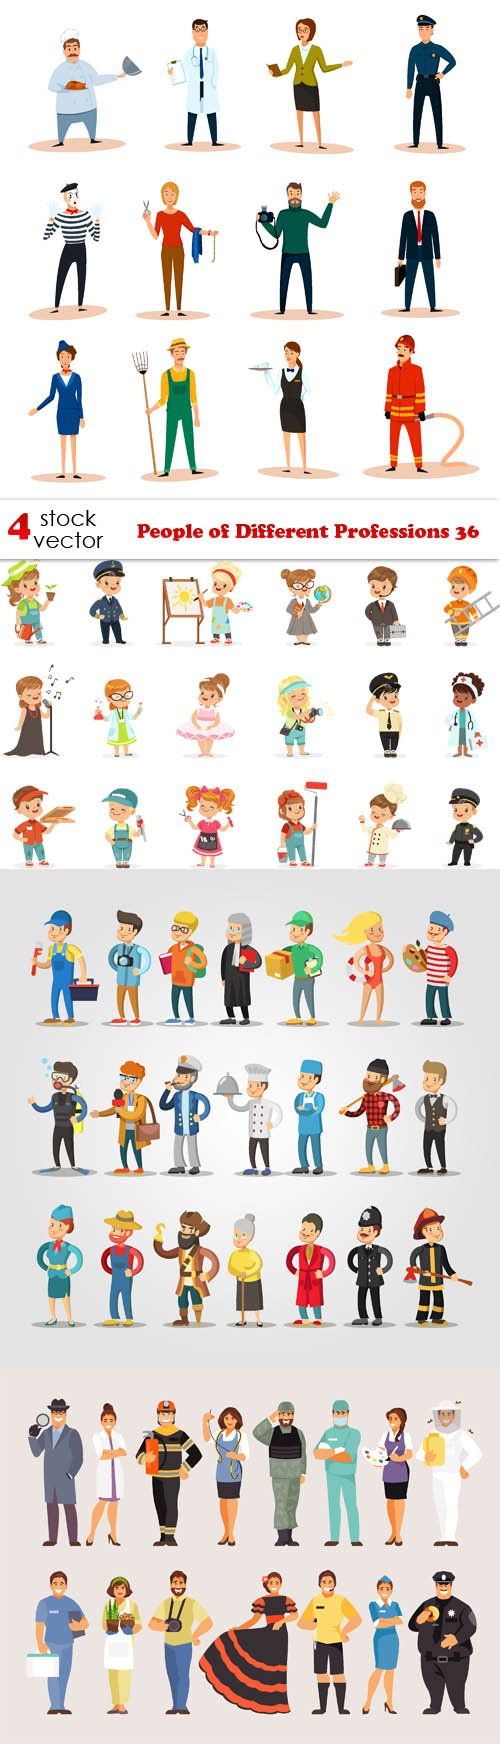 Vectors - People of Different Professions 36